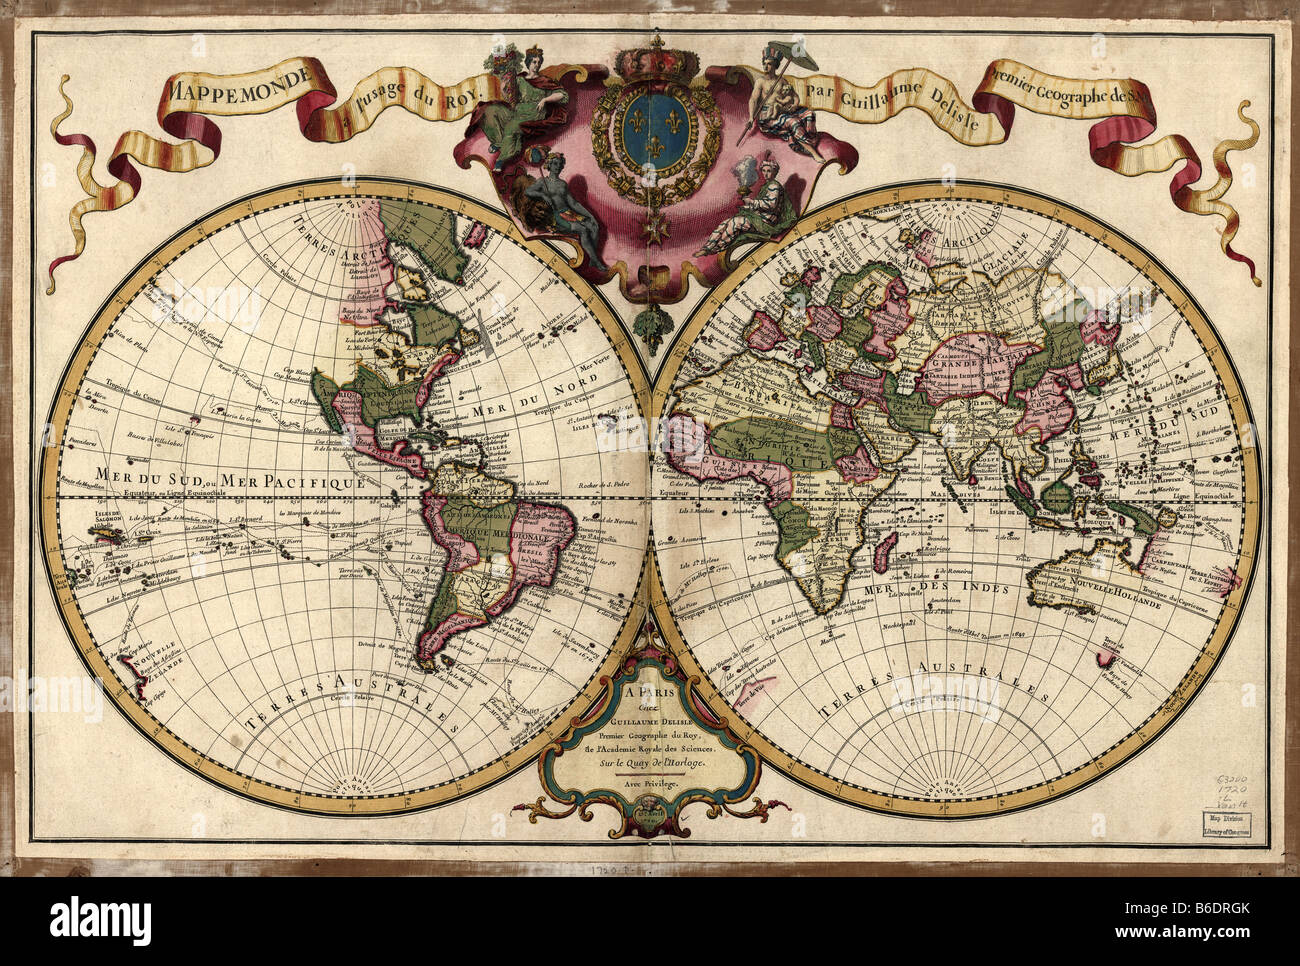 the political affairs of the world in the 18th century Modern-day world political maps rarely specify forms of government what matters today is whether a given state is sovereign, as all sovereign states are regarded as forming equivalent individuals in the global community of nations.